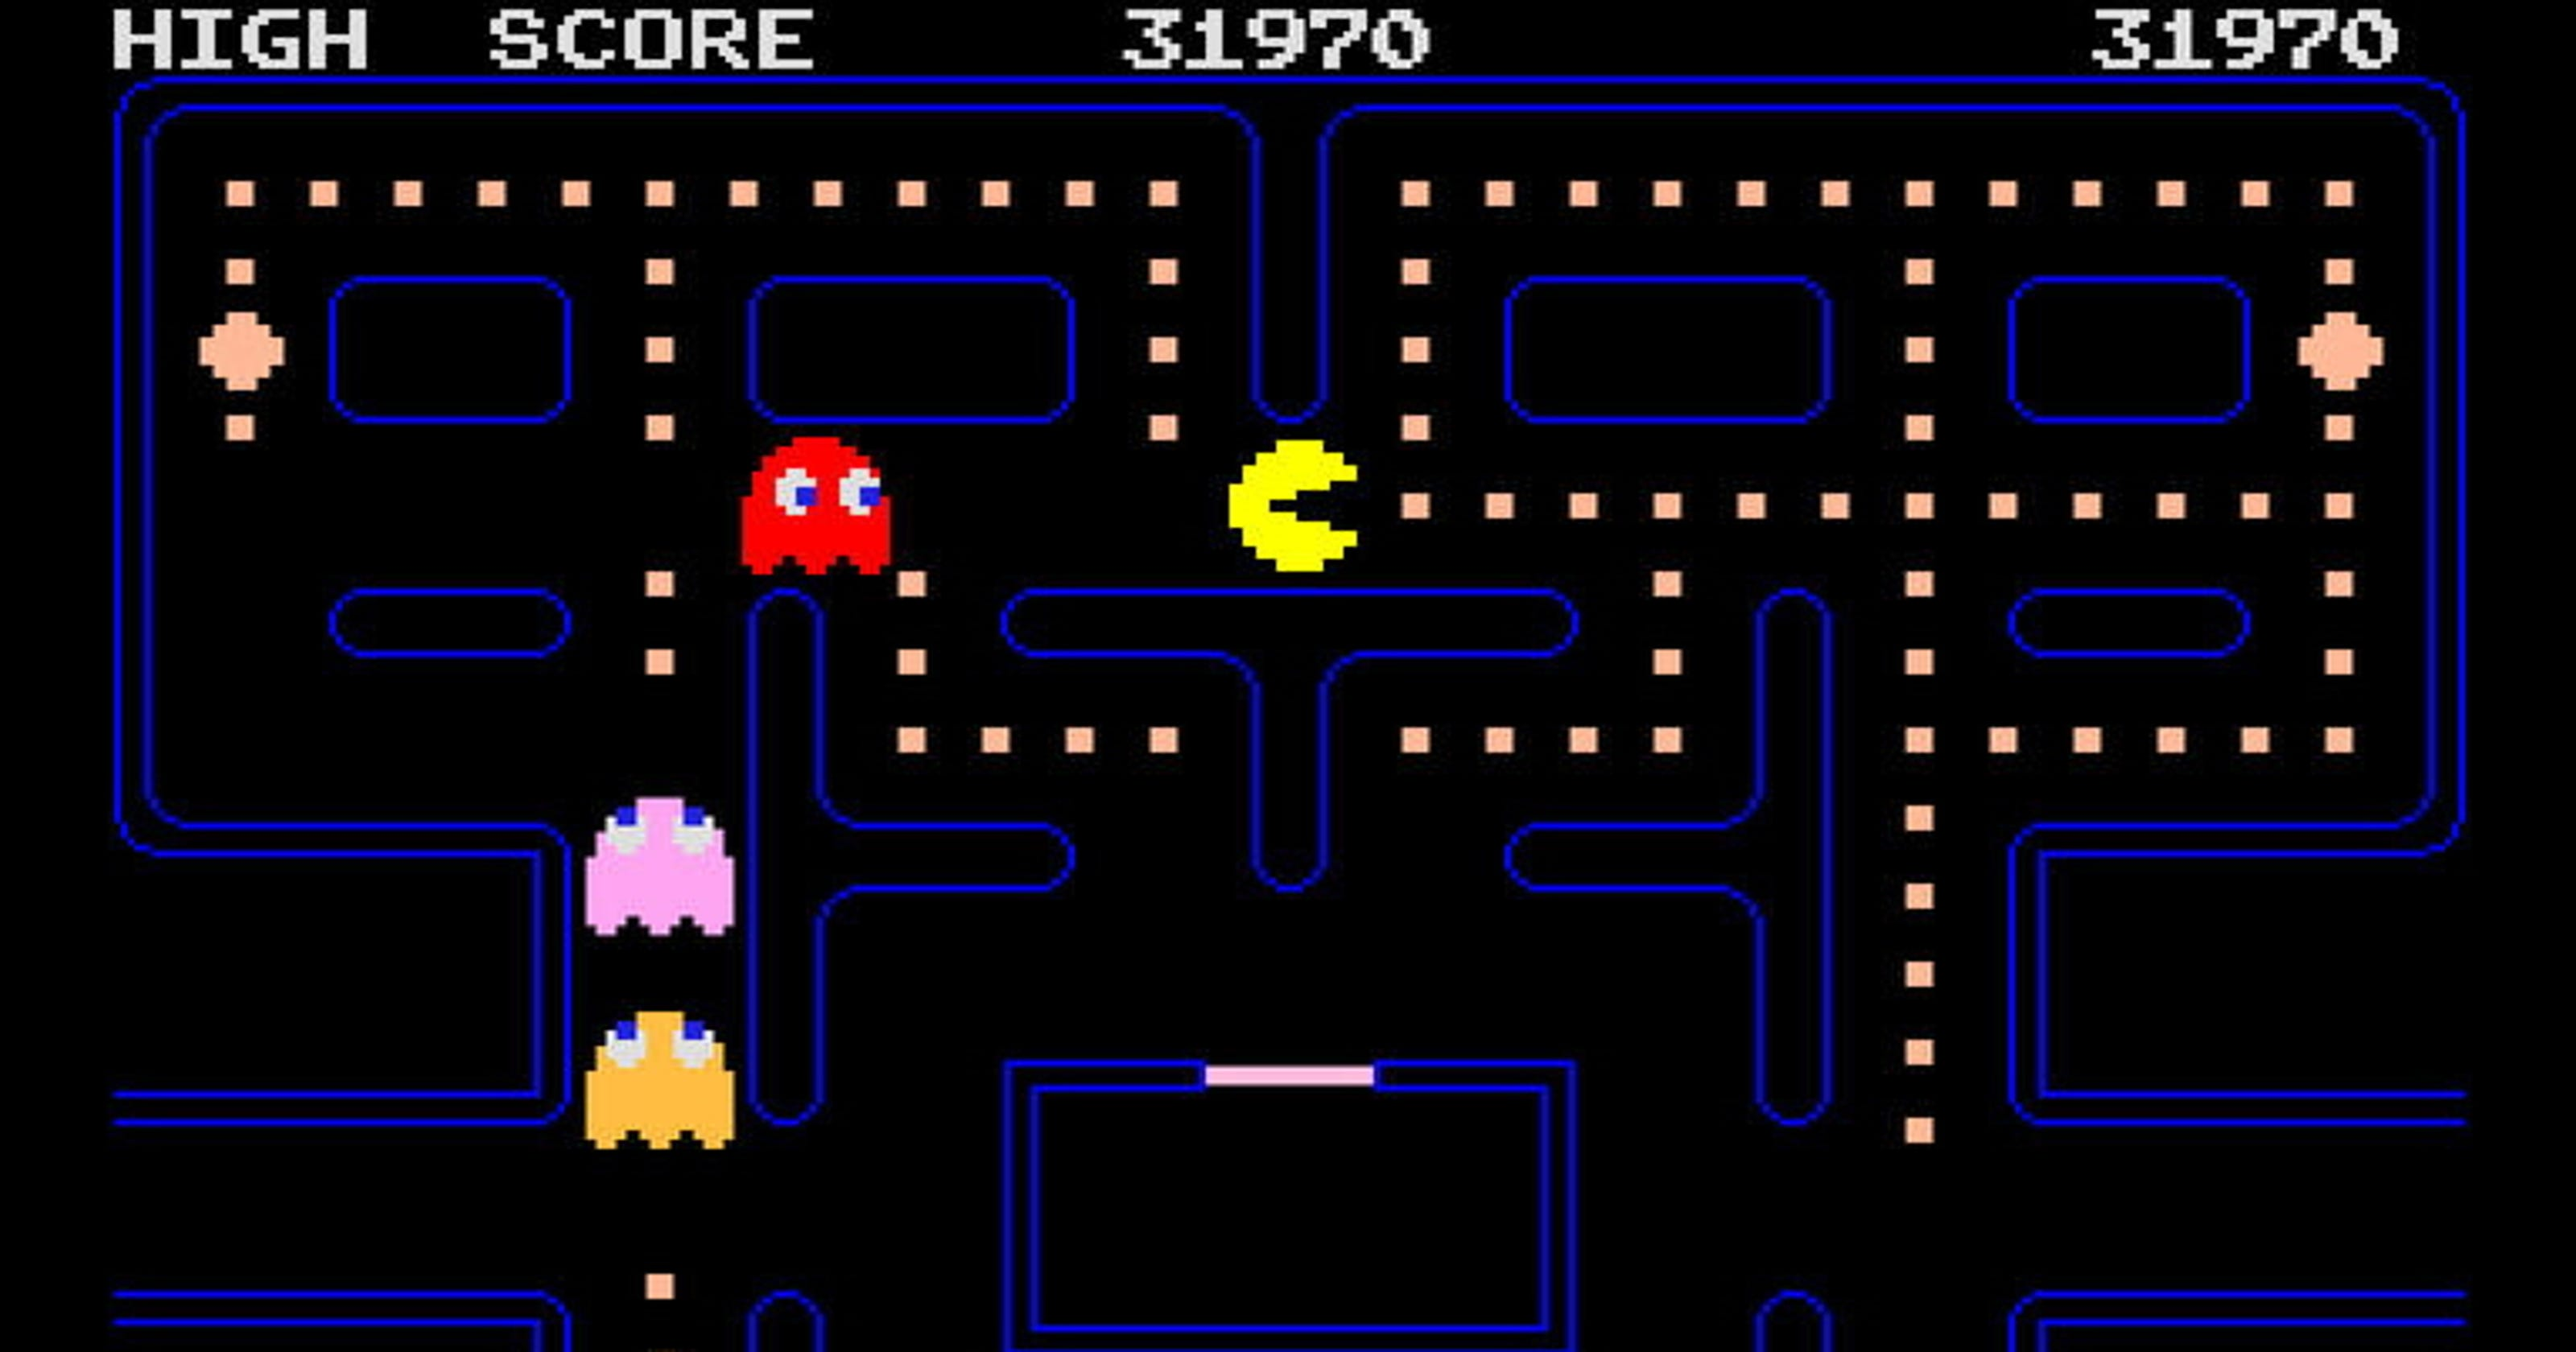 It's just a picture of Intrepid Images of Pac Man